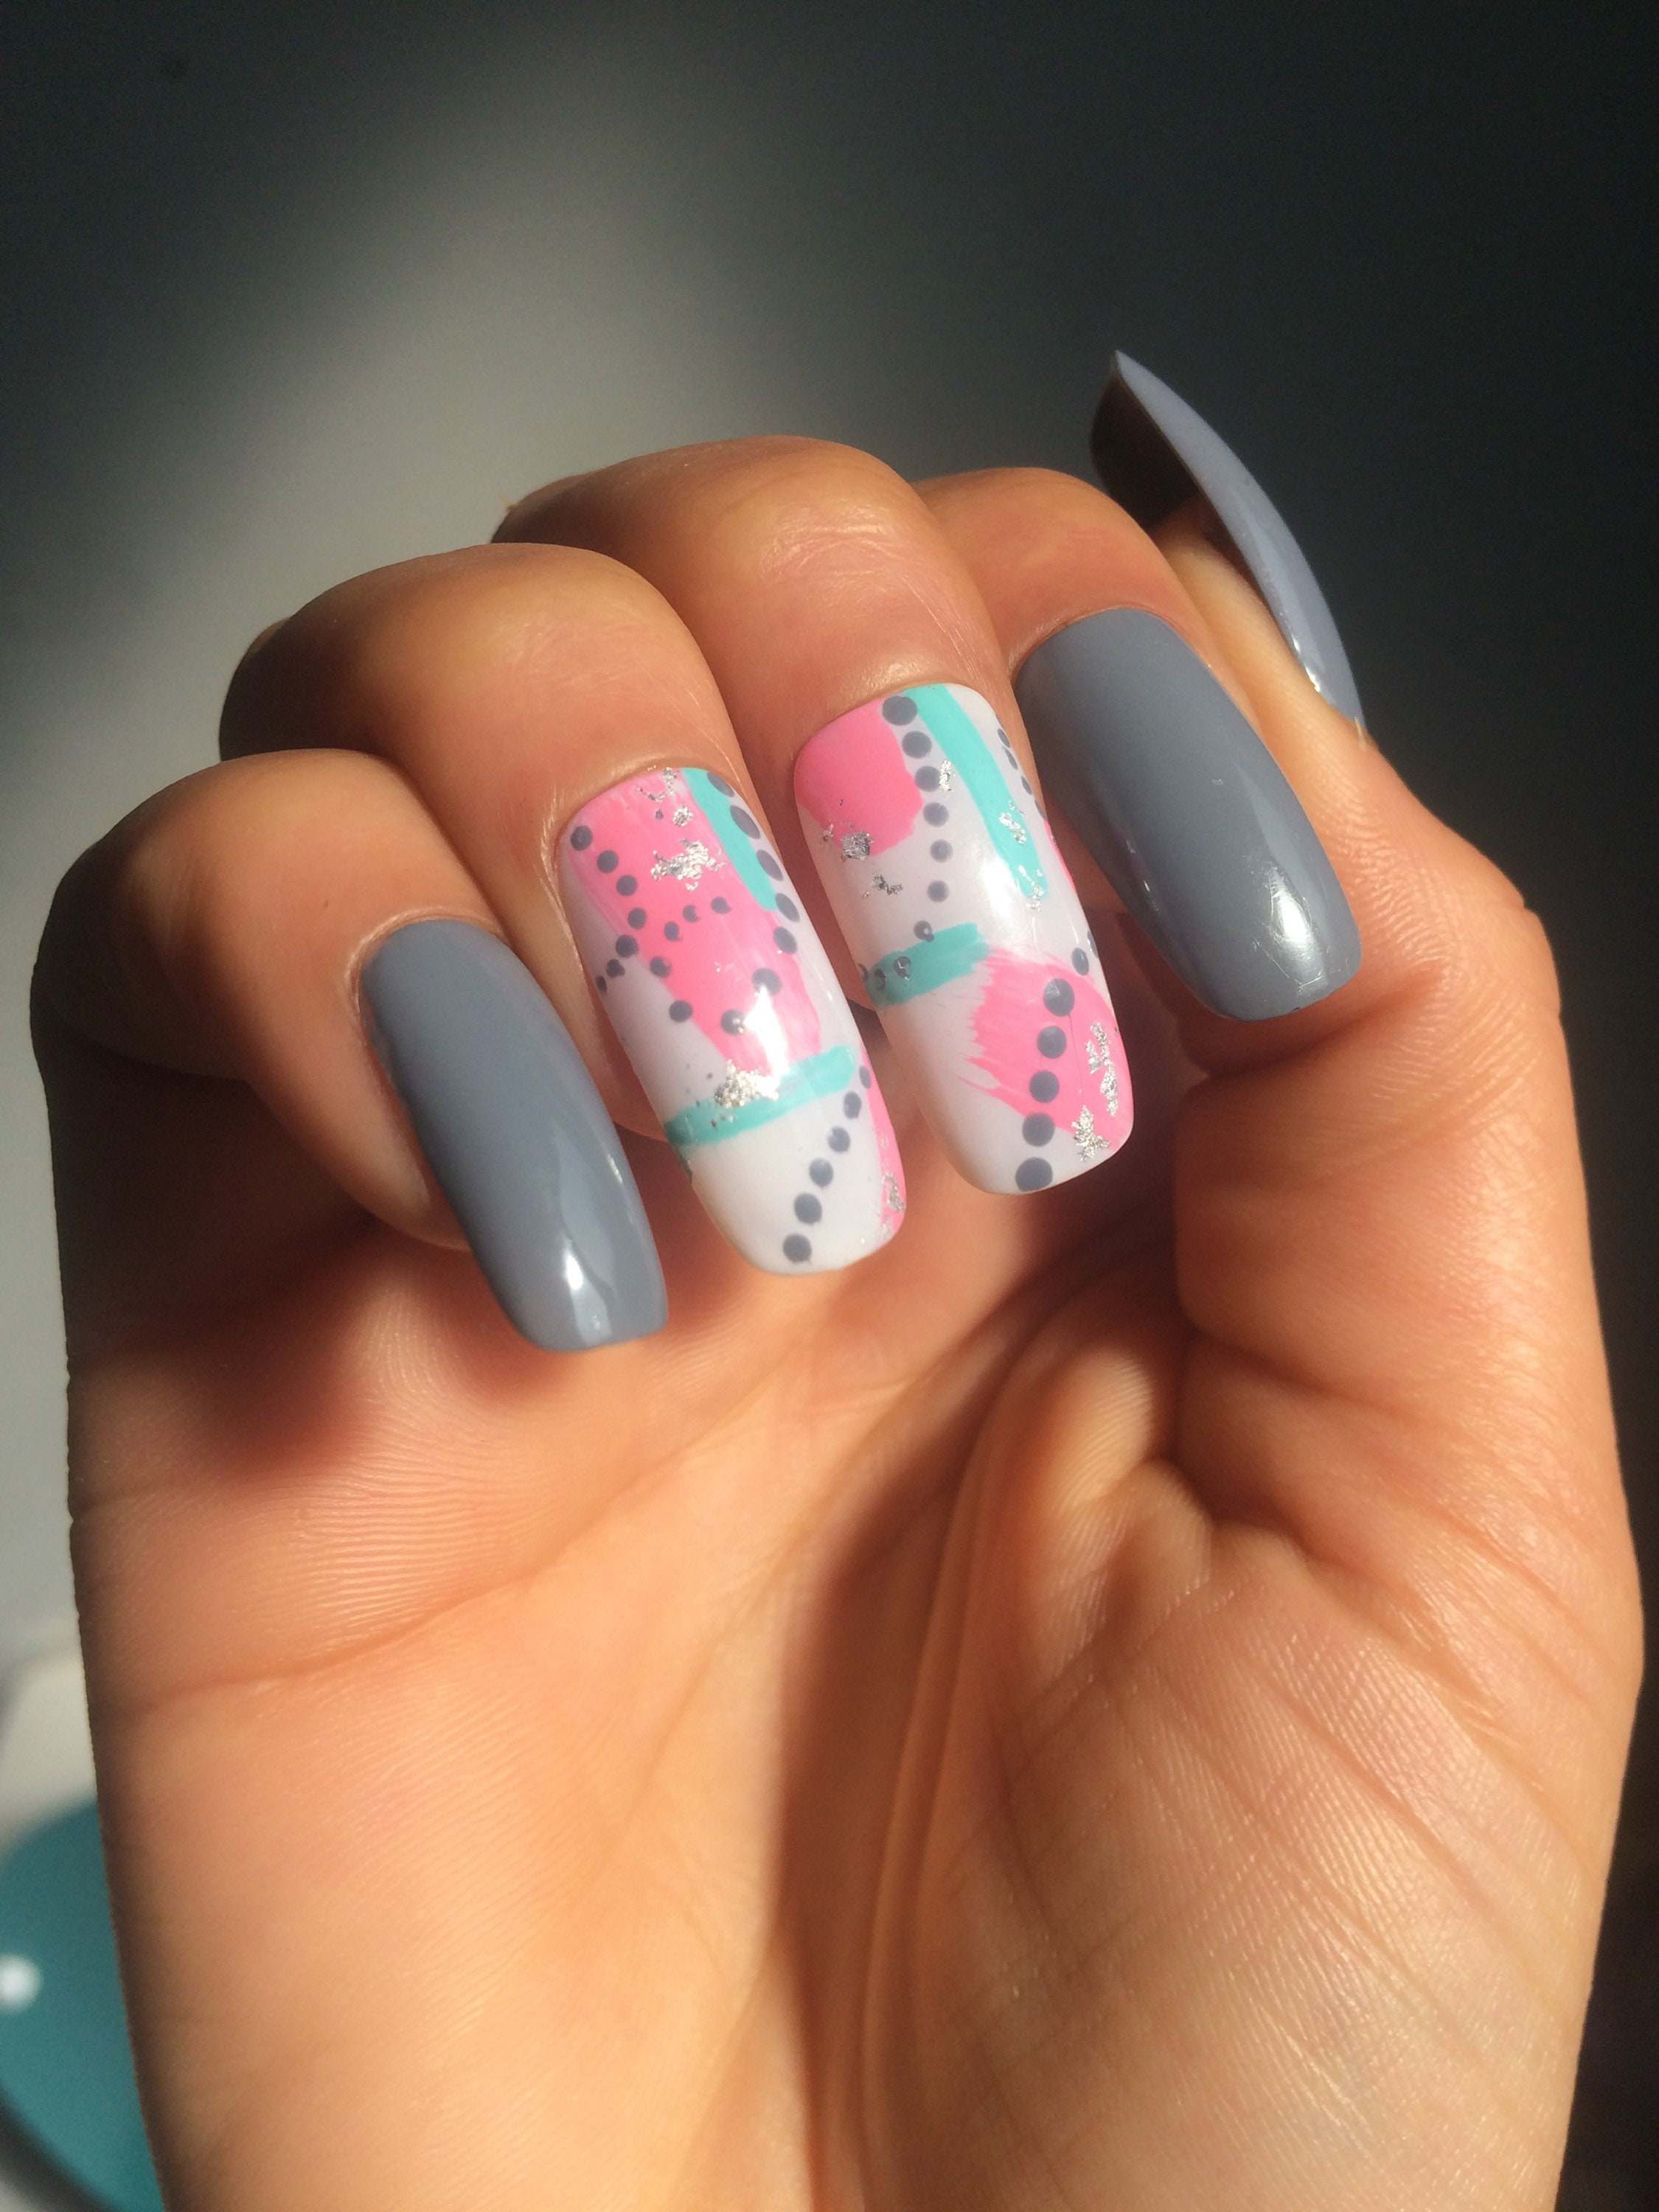 Grey Nails with freehand nail art design from LousNails4U on Etsy Studio